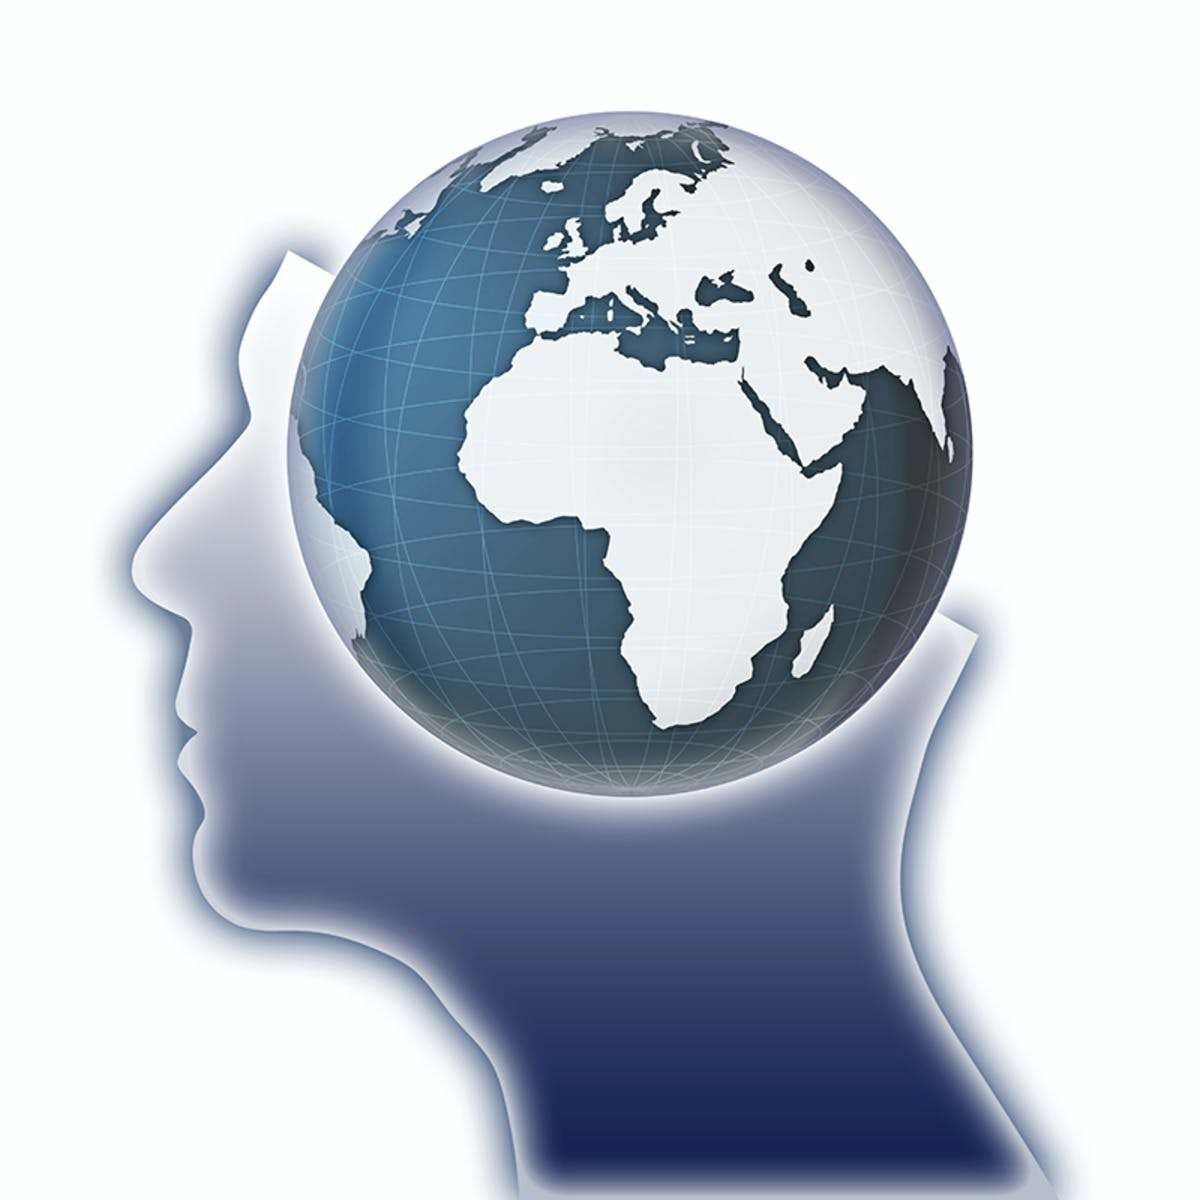 Intercultural Communication and Conflict Resolution